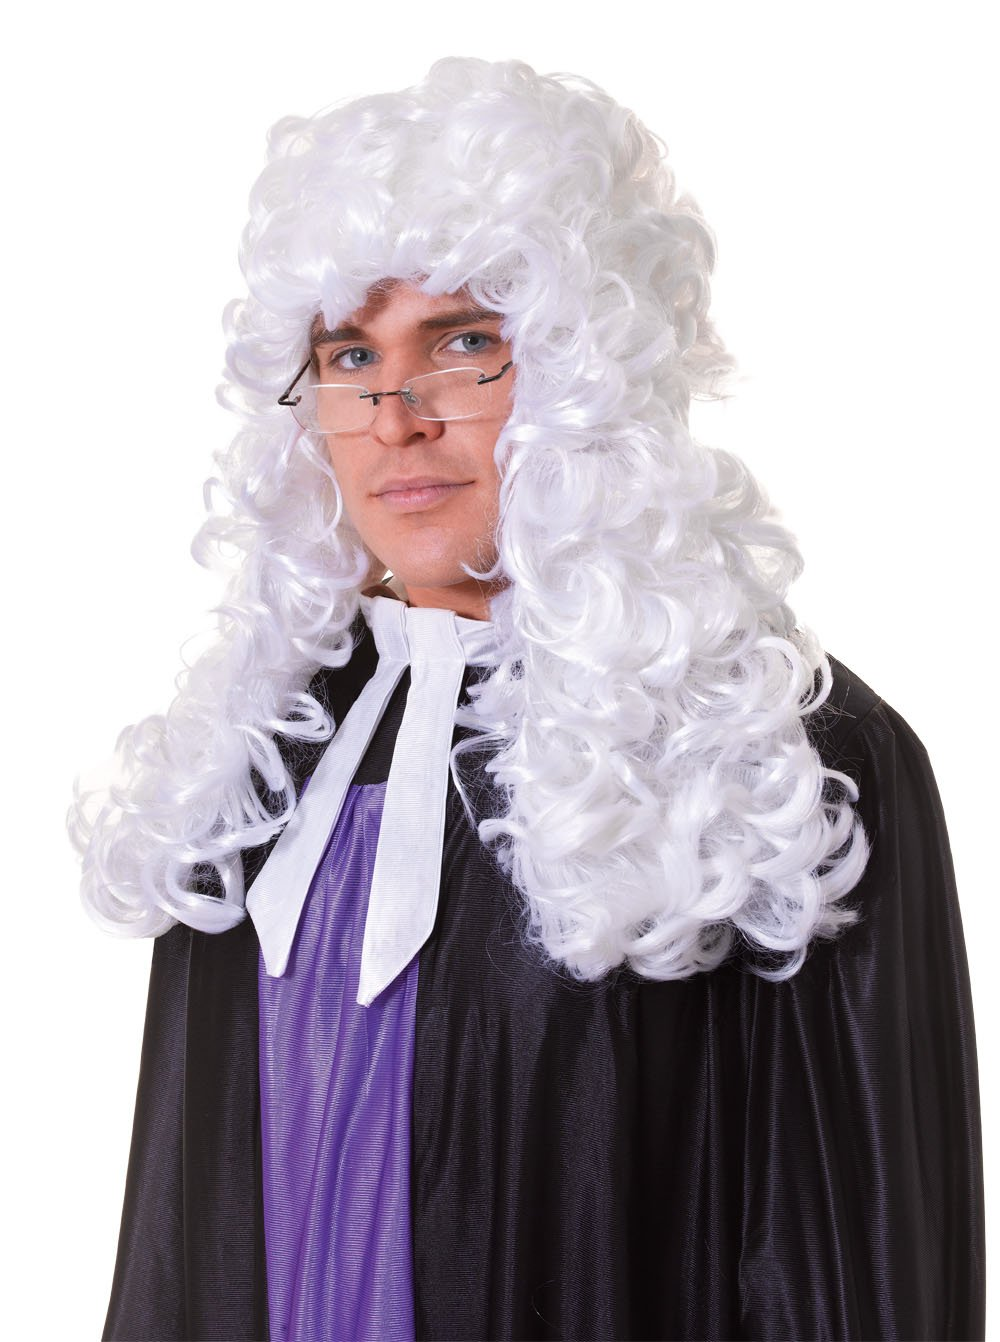 Bristol Novelty BW339 Judge Budget Wig, White, One Size